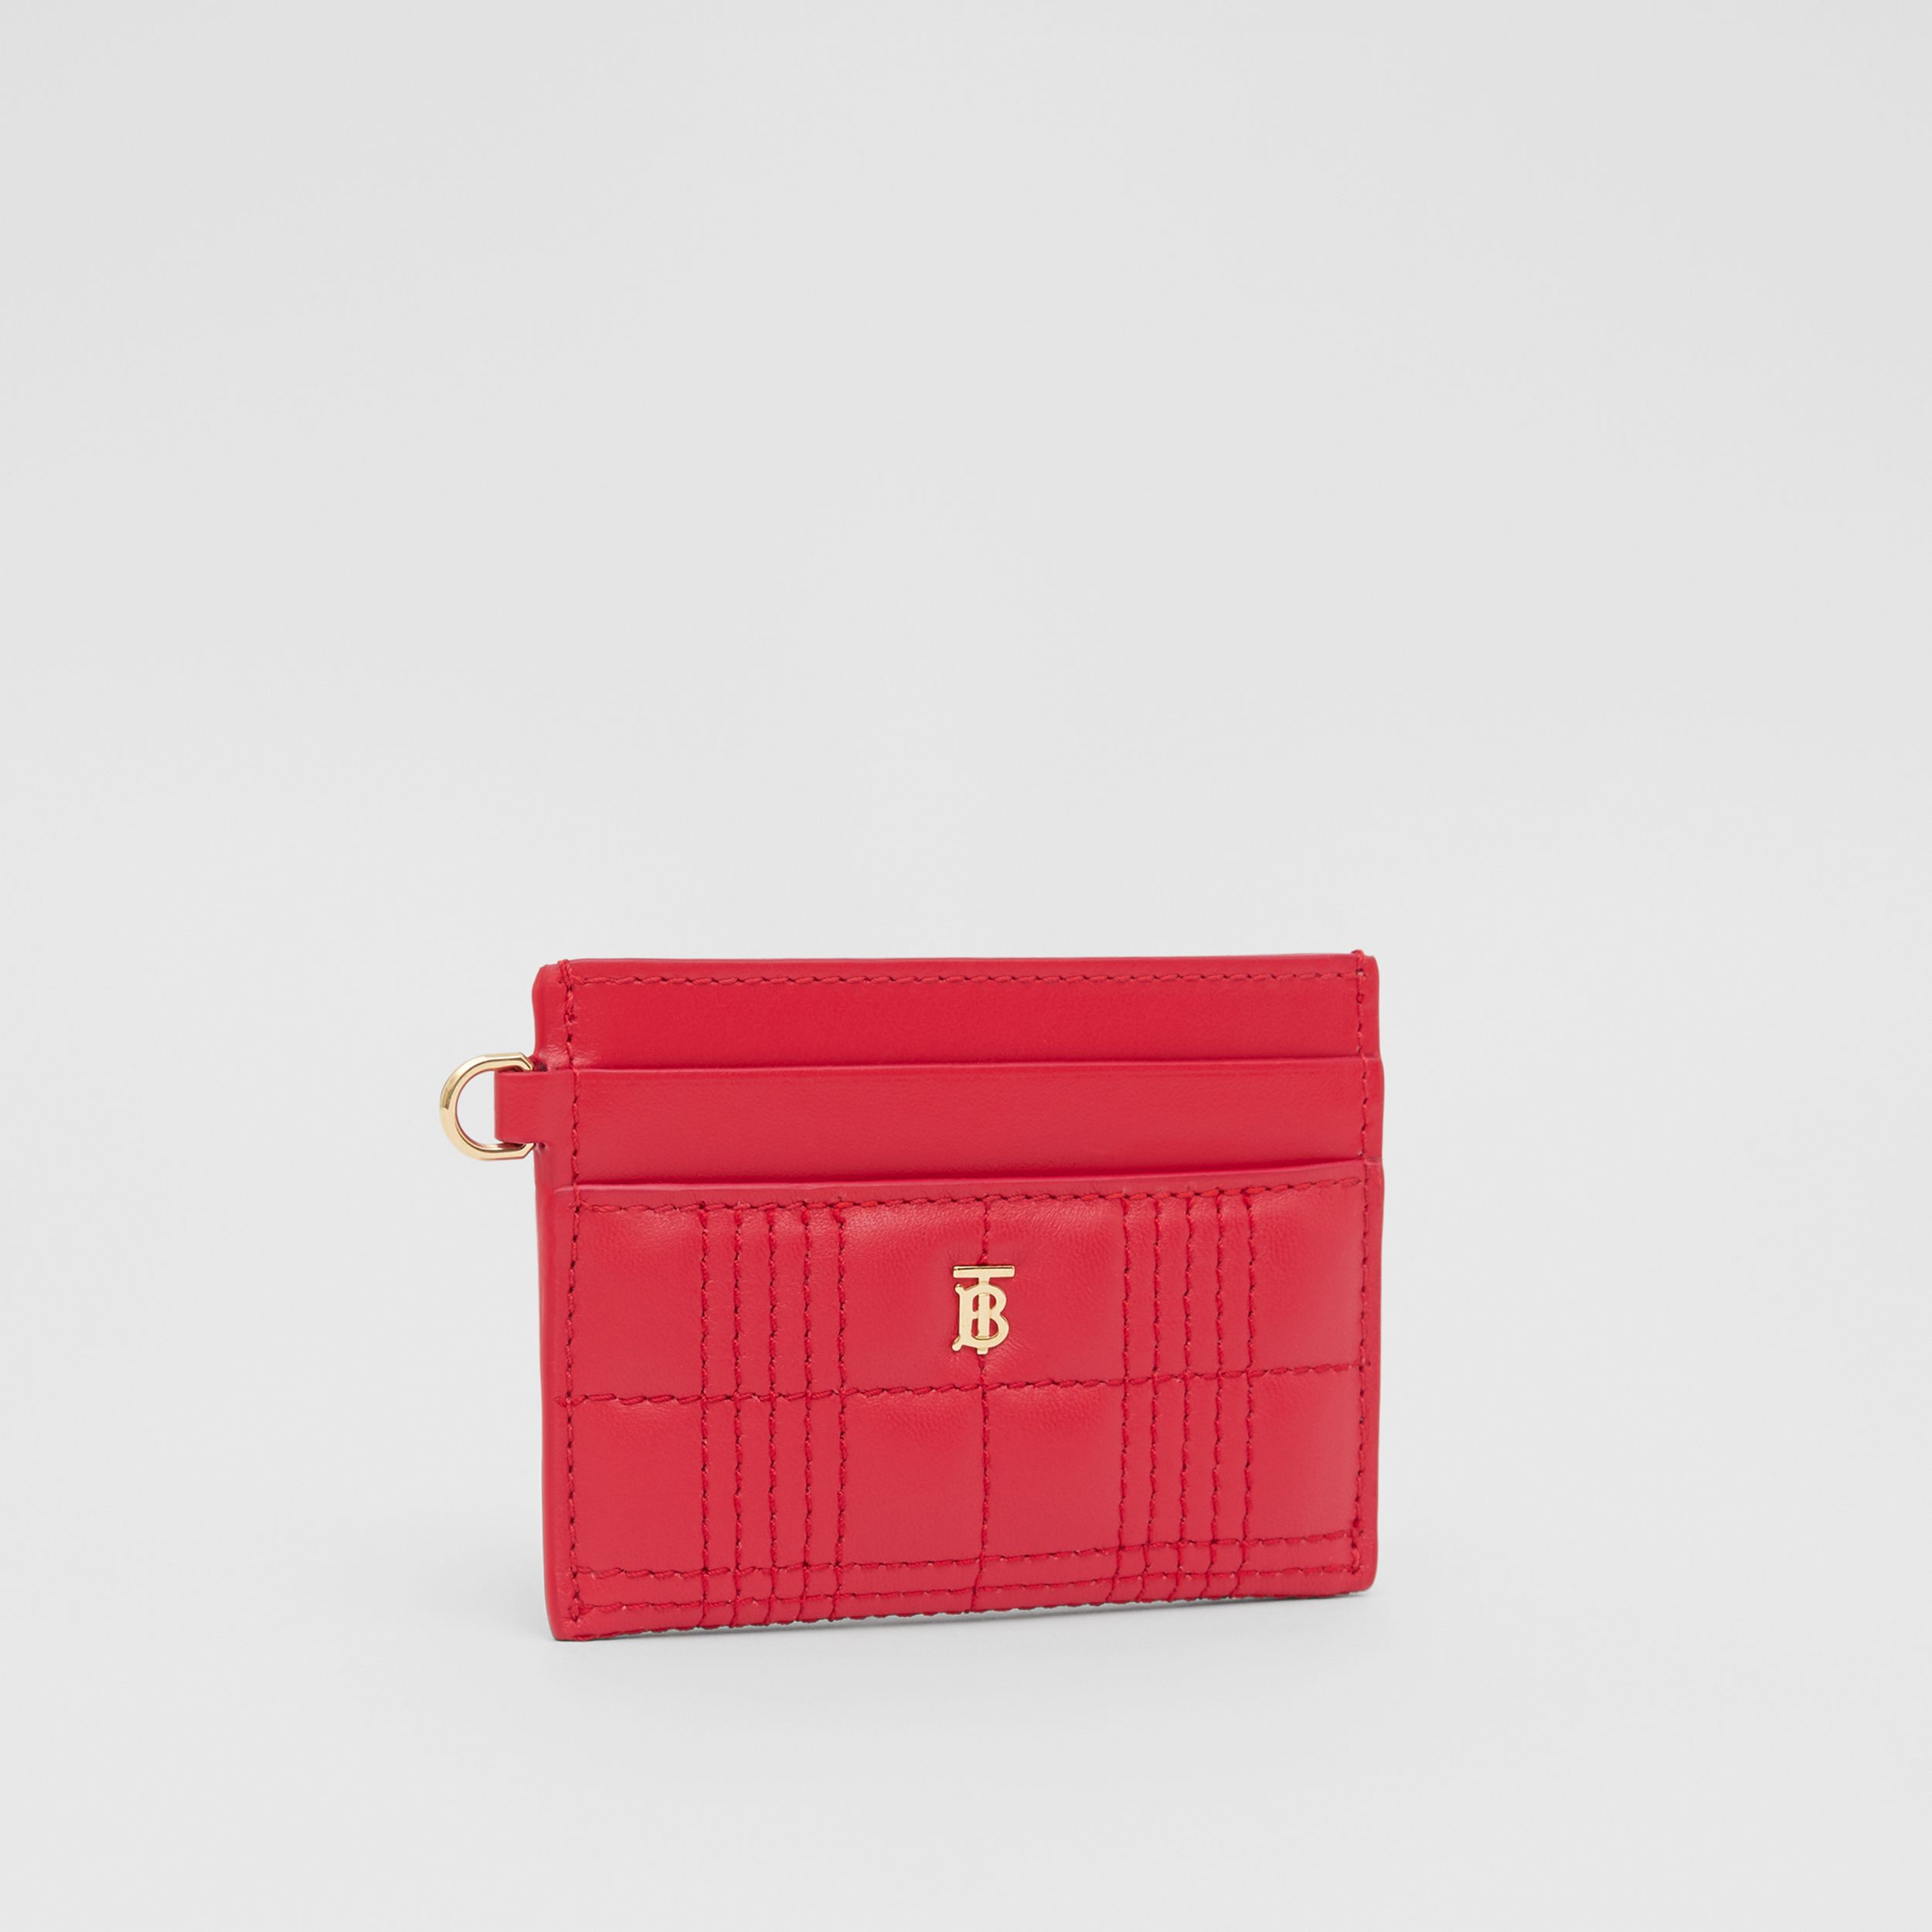 Monogram Motif Quilted Lambskin Card Case in Bright Red - Women | Burberry - 4